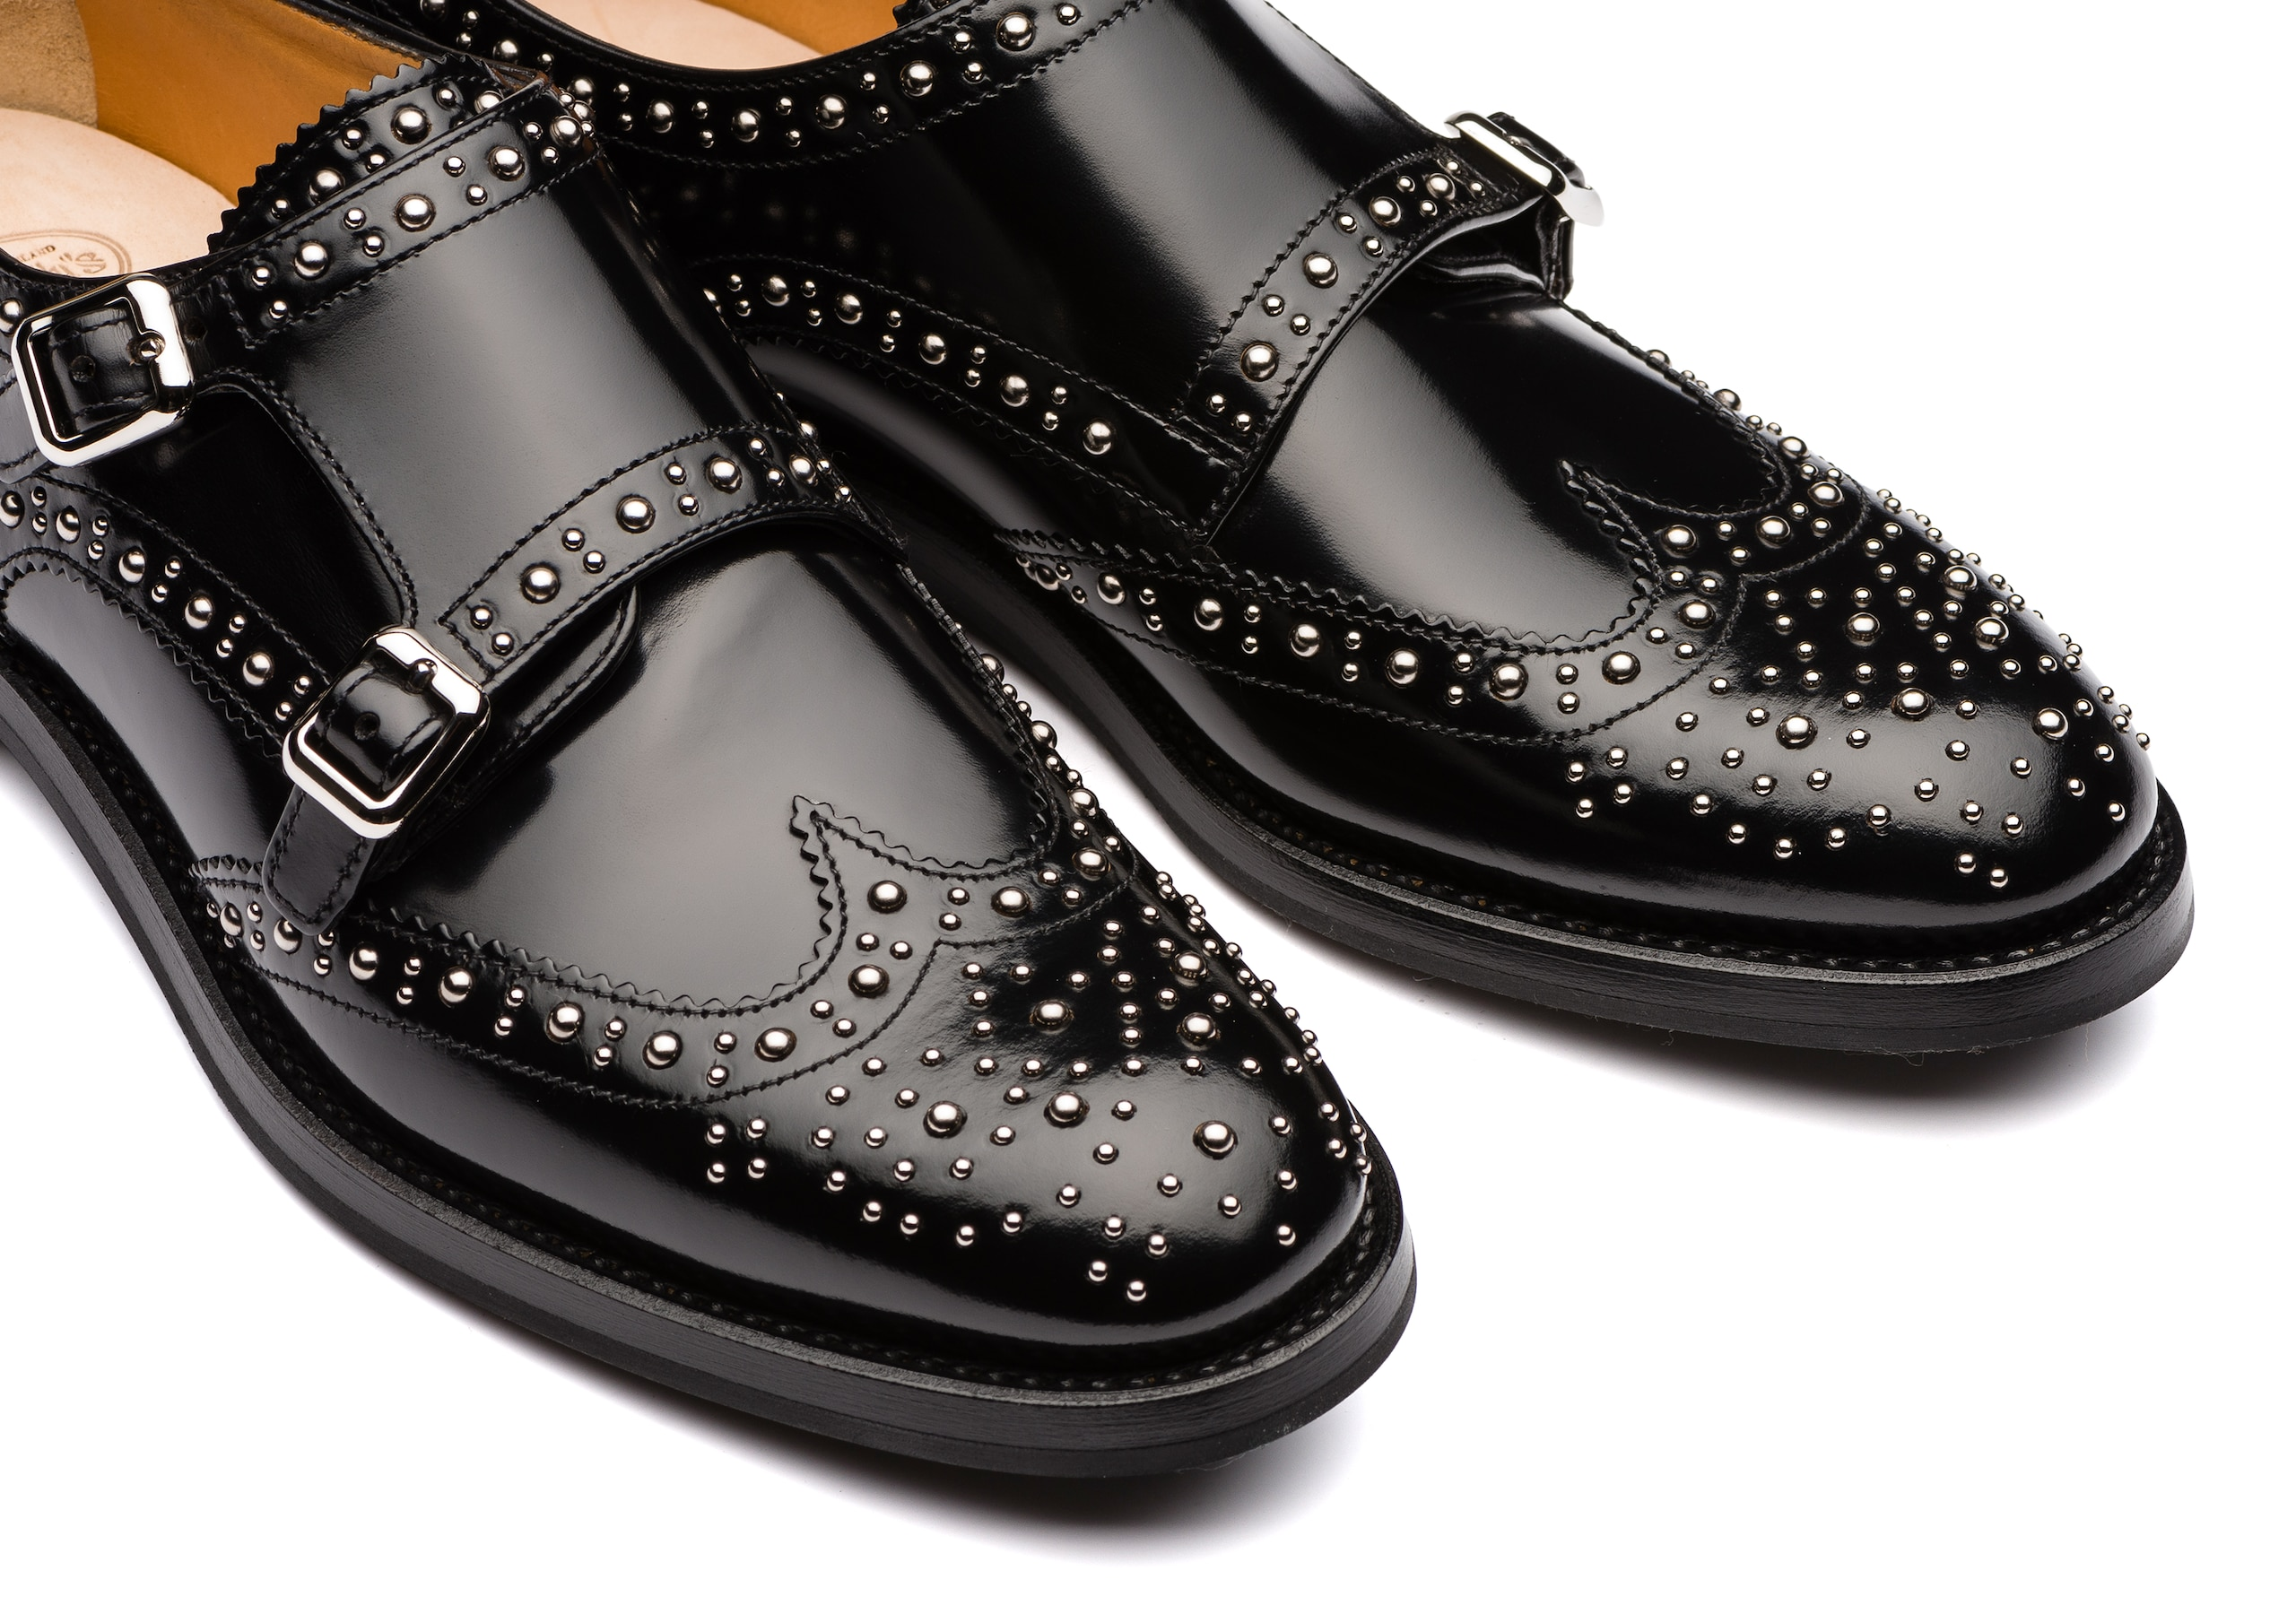 Lana met. Church's Polished Binder Monk Brogue Stud Black